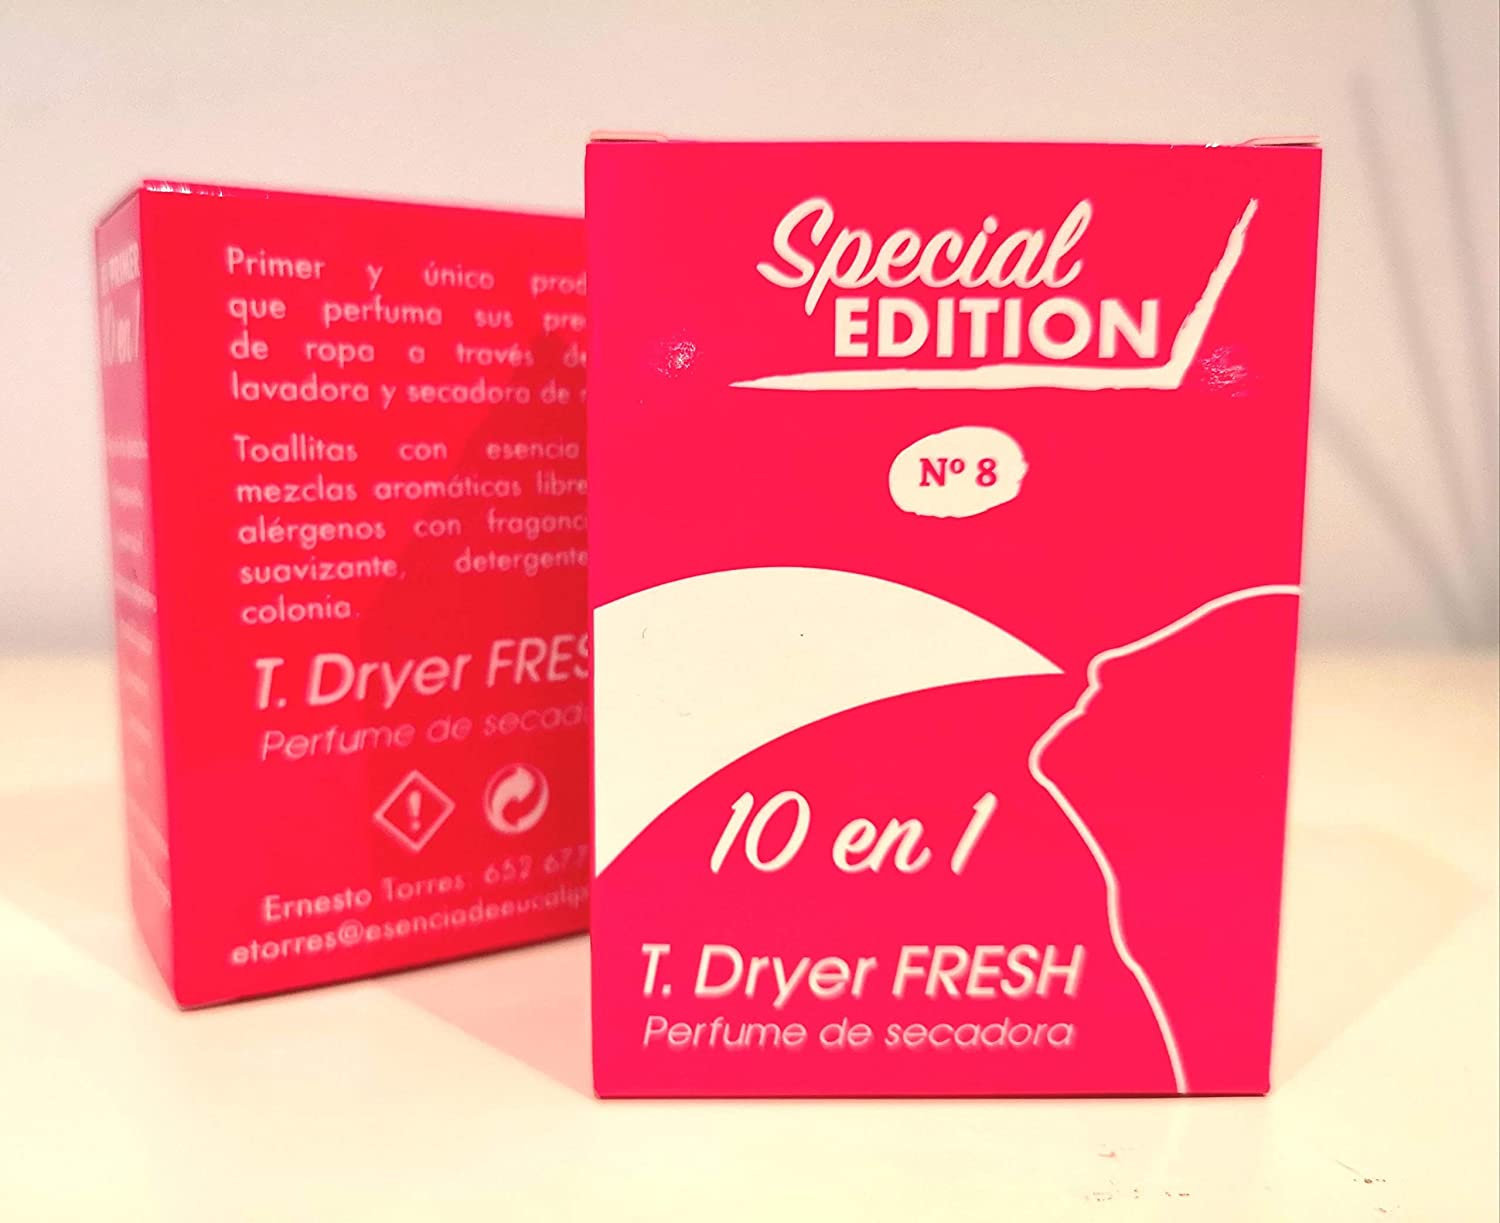 T.Dryer Fresh Parfum for tumble dryer, Perfume de Secadora.: Amazon.es: Salud y cuidado personal